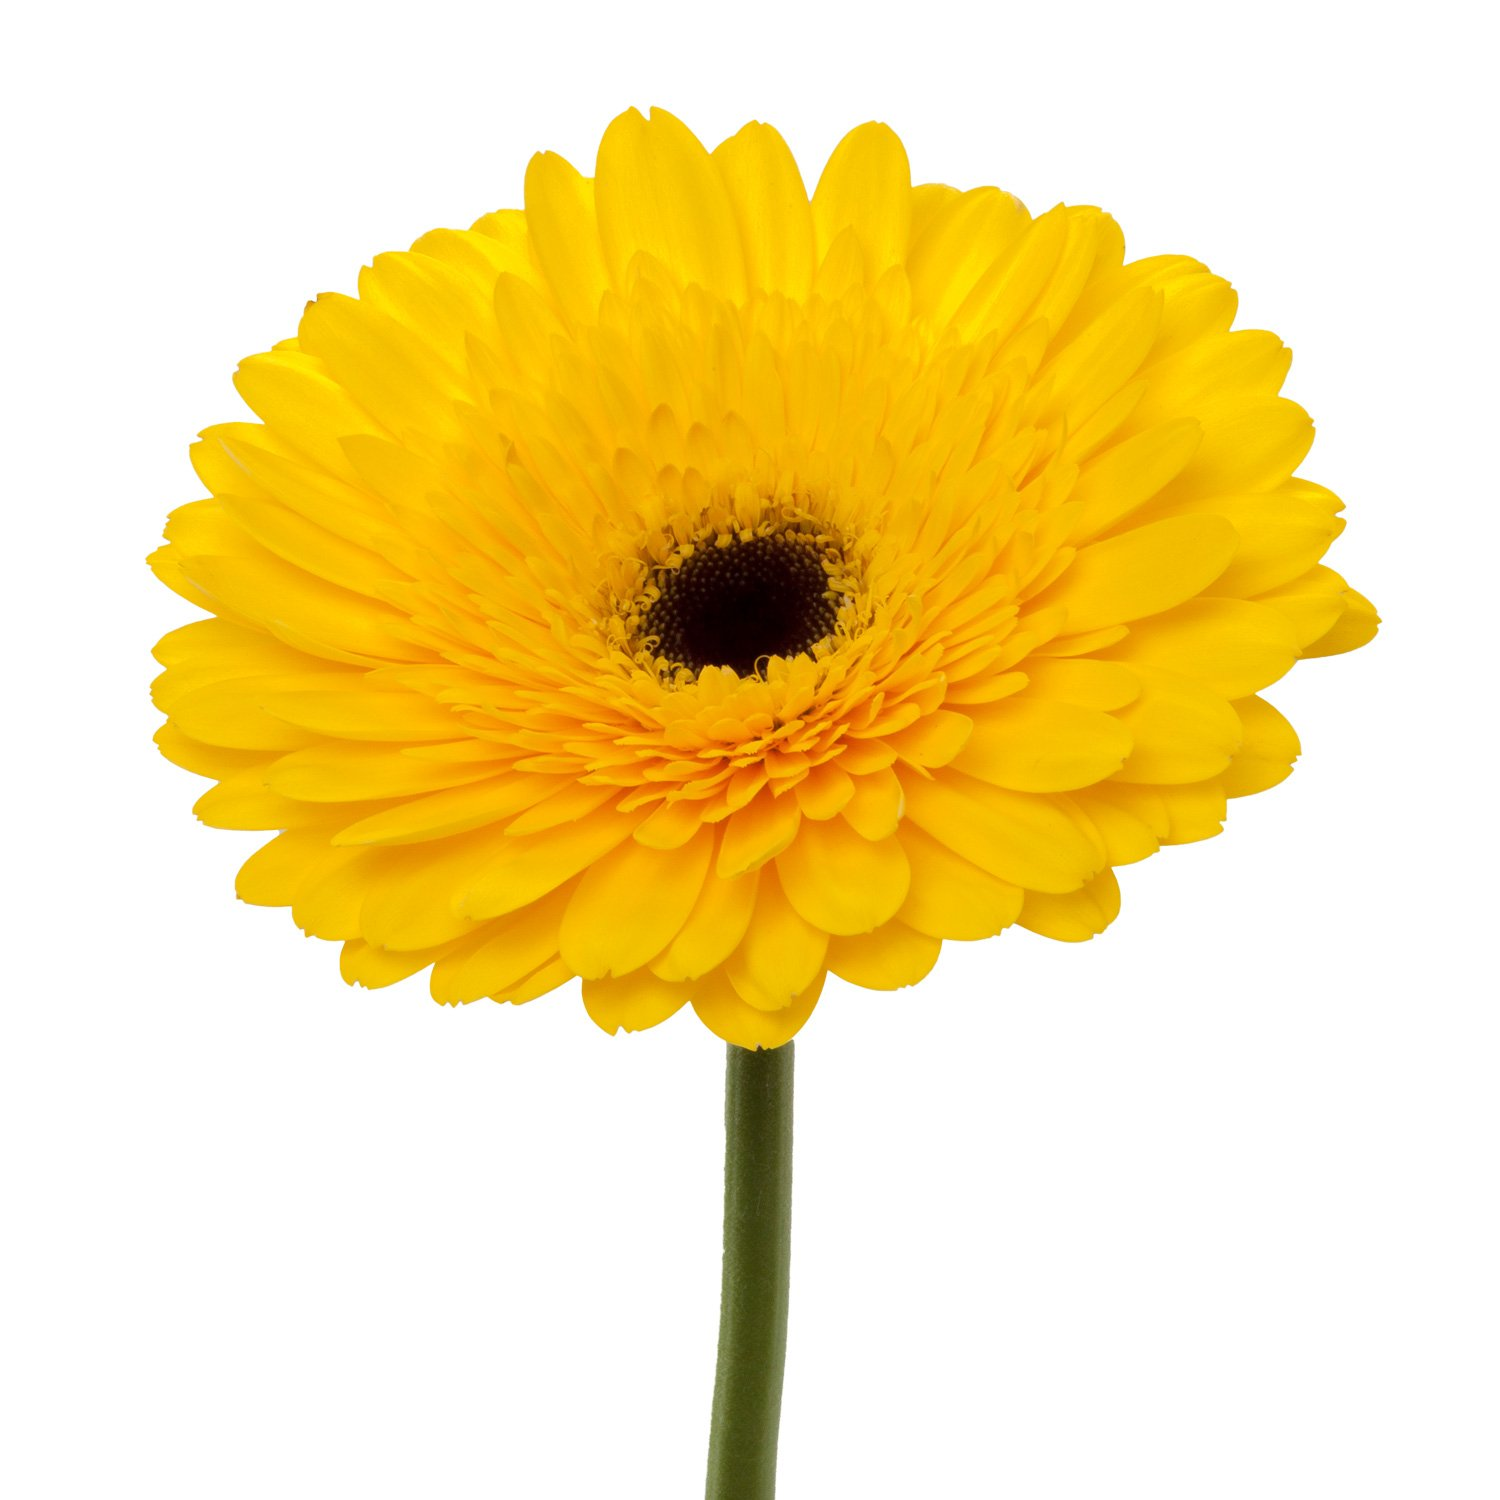 Gerbera Dark Center | Yellow - 40 Stem Count by Flower Farm Shop